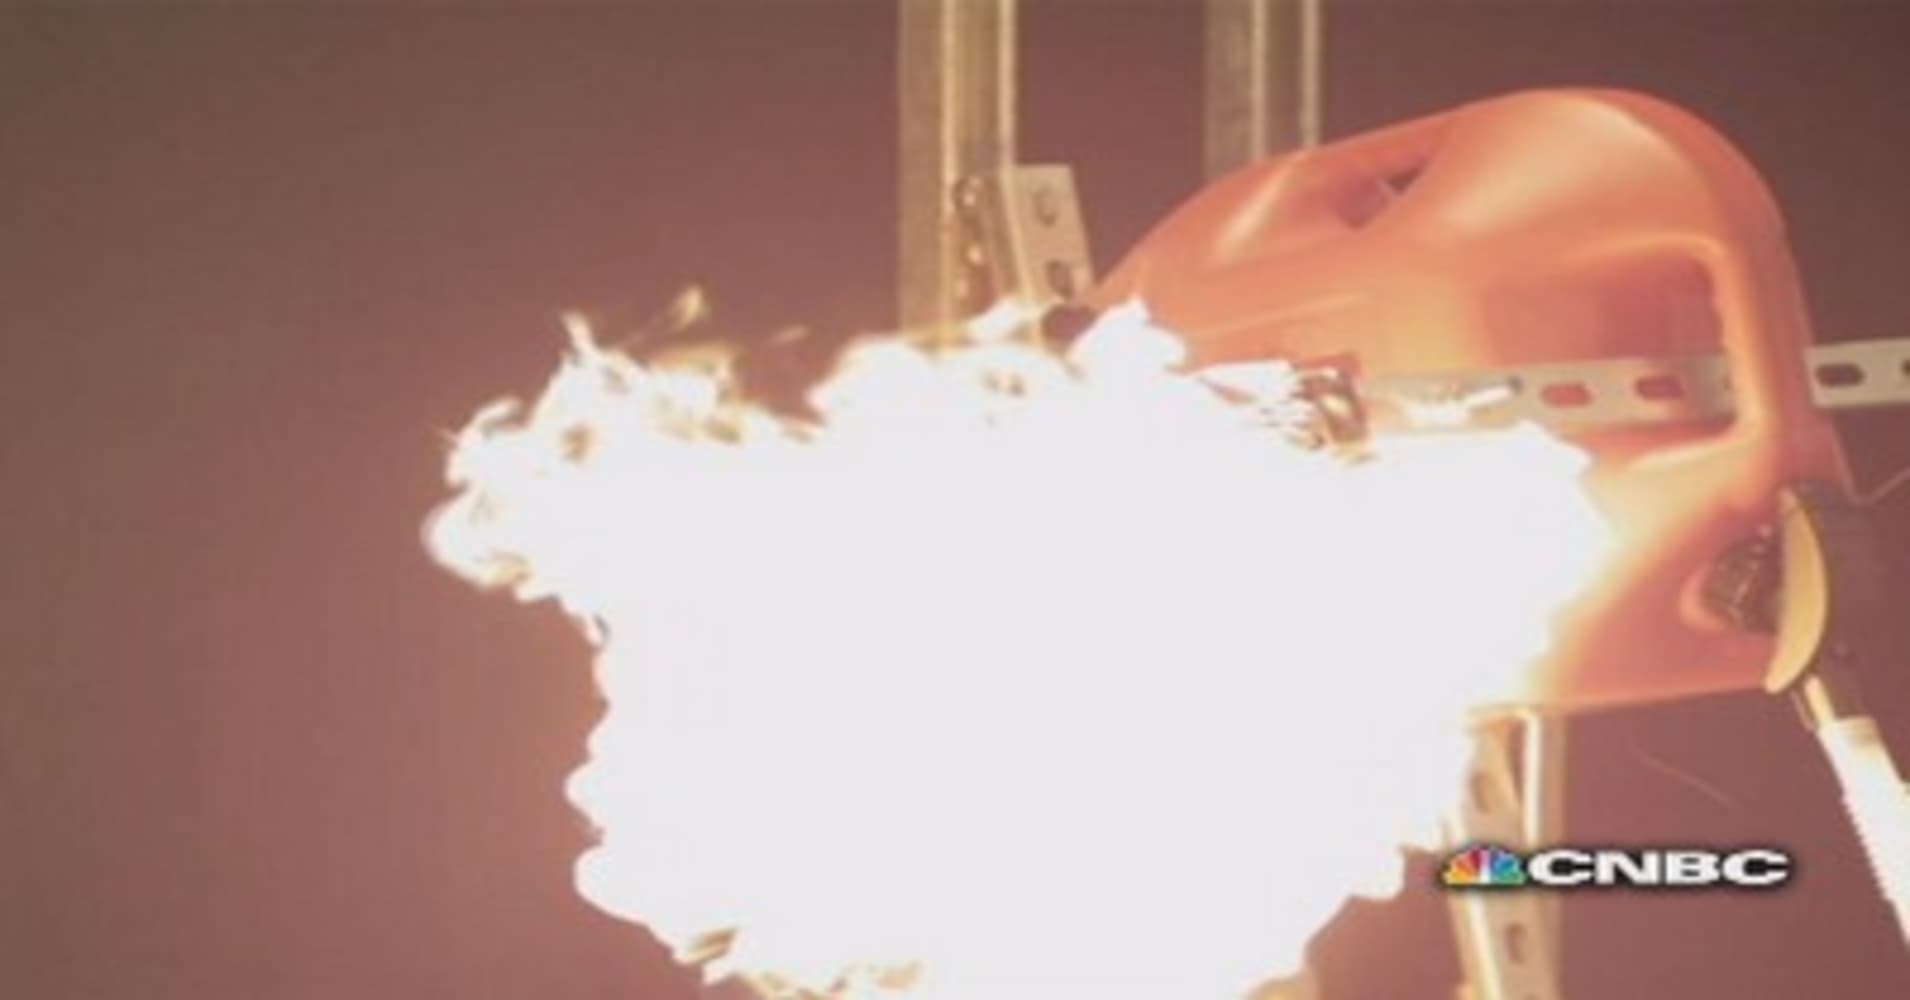 warning scientists say gas cans carry risk of explosion